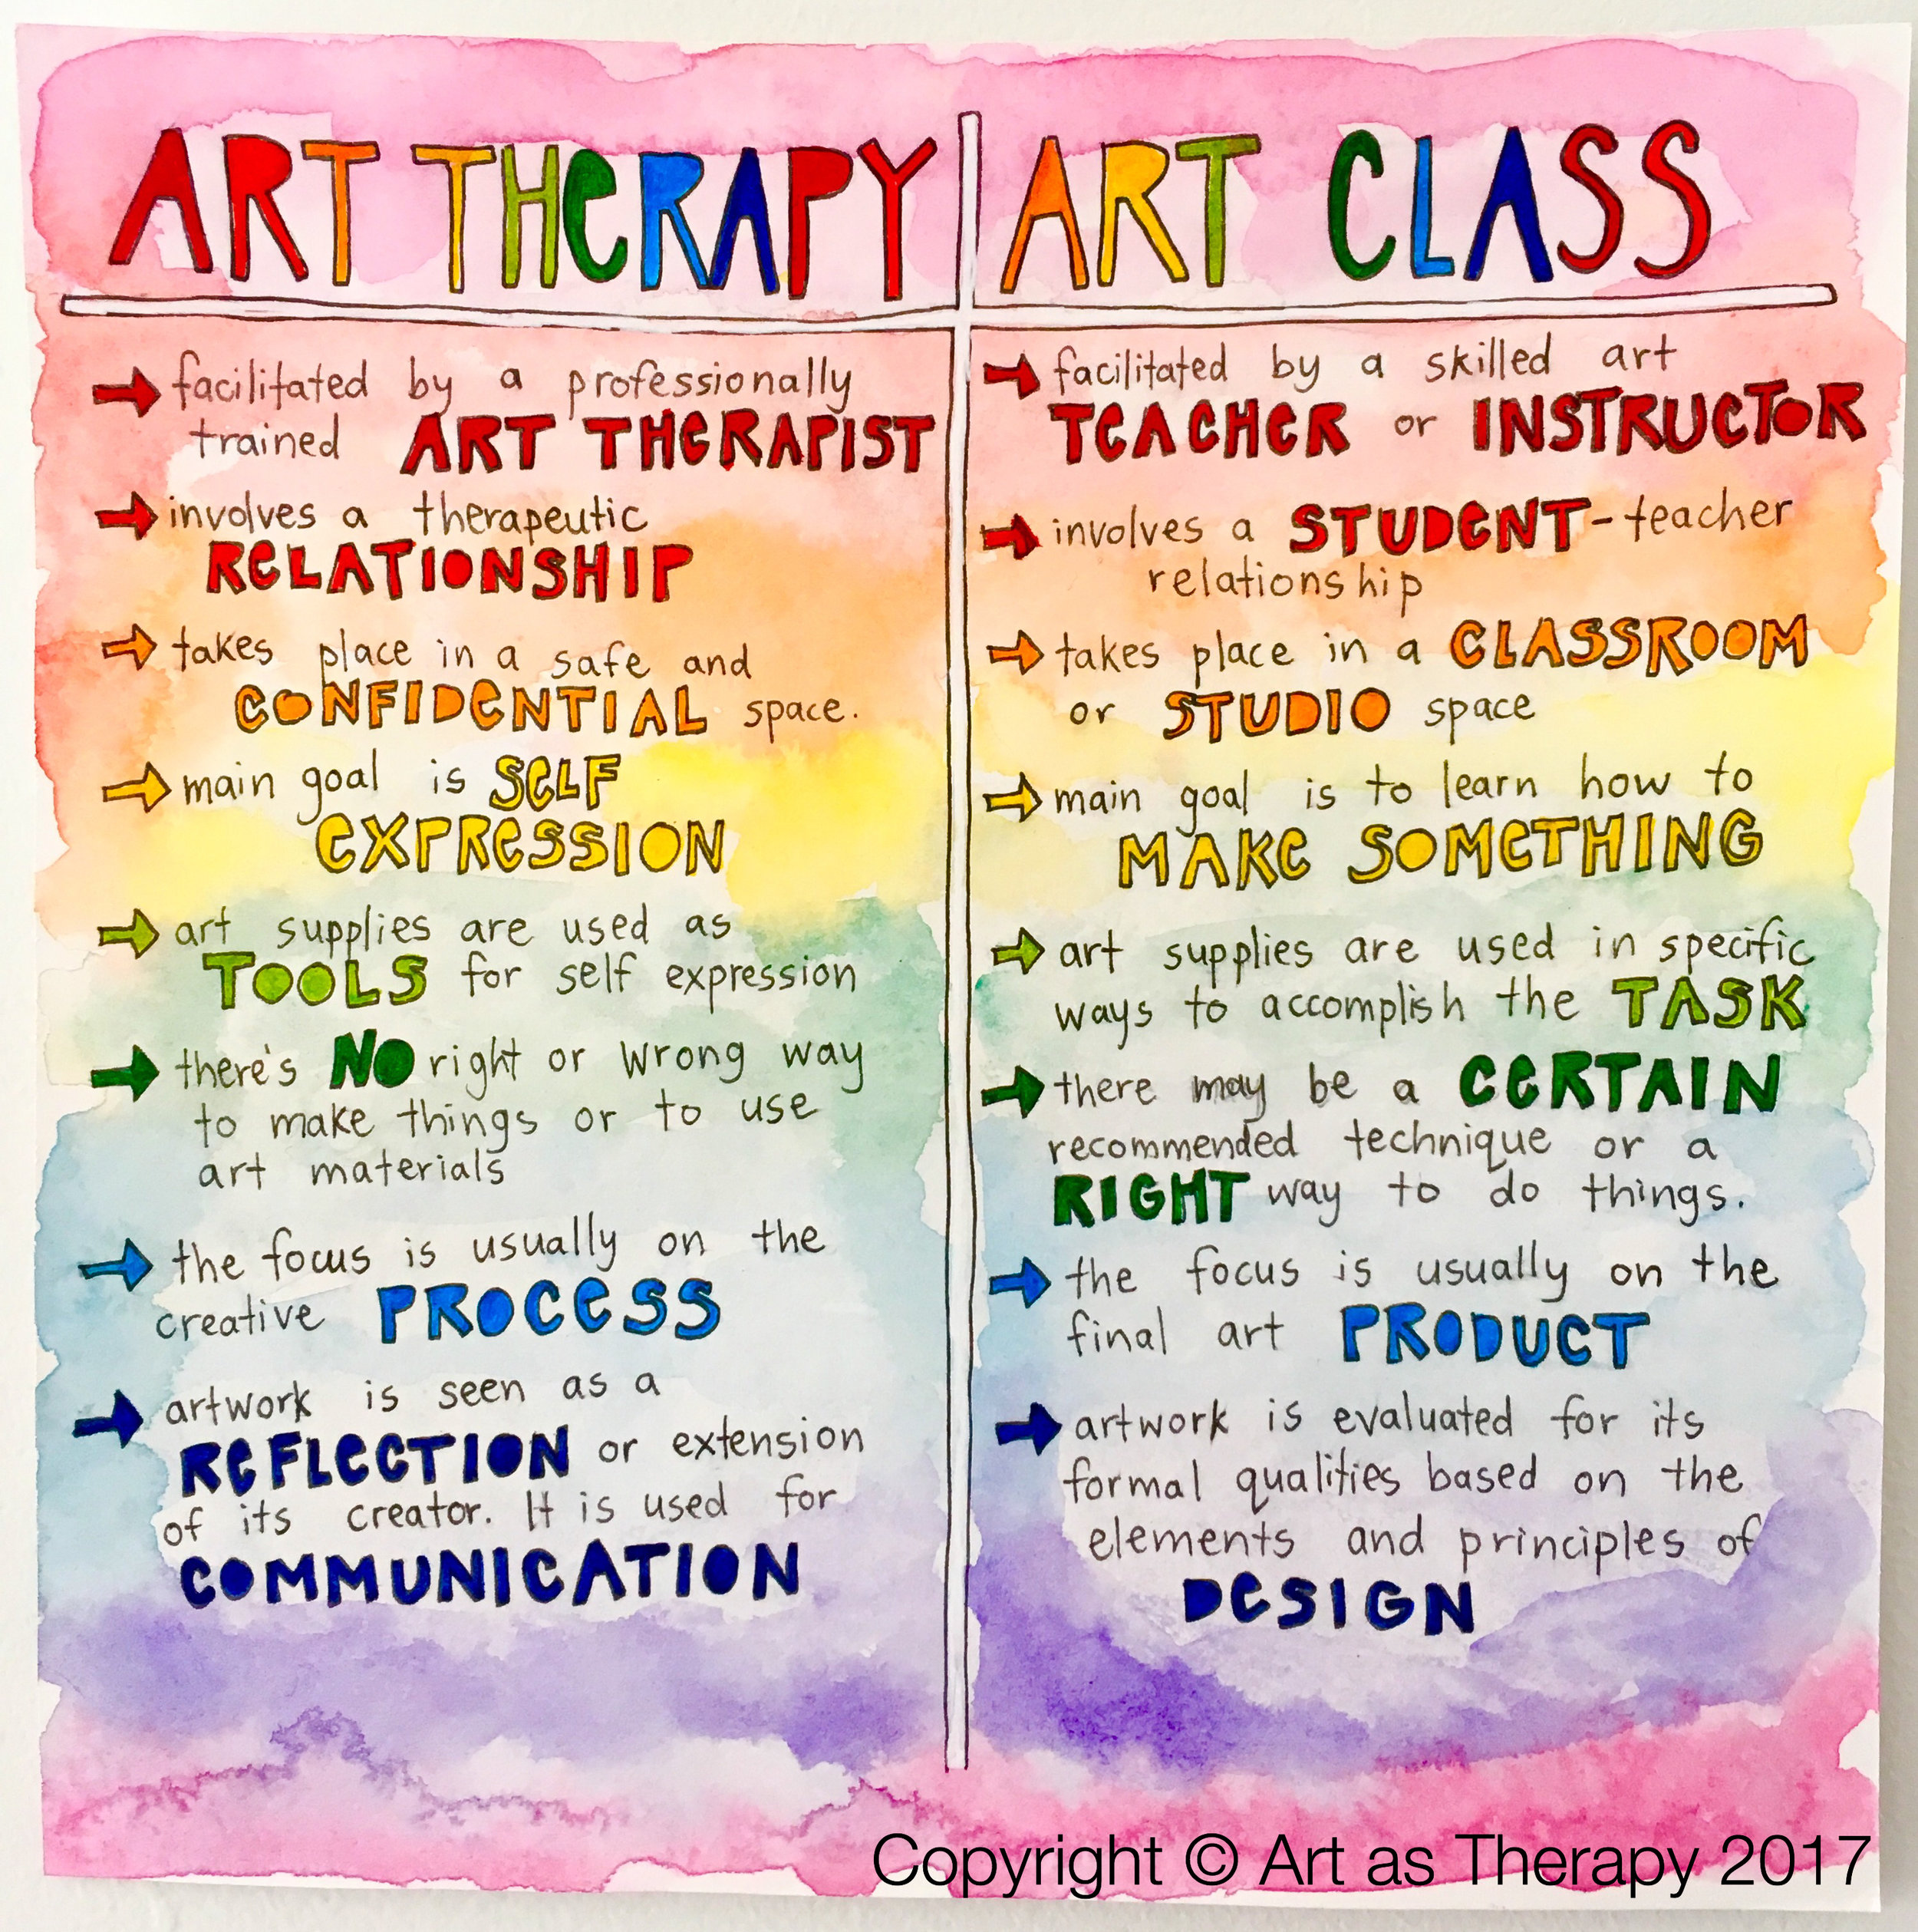 Whats The Difference Between Art Therapy And An Art Class